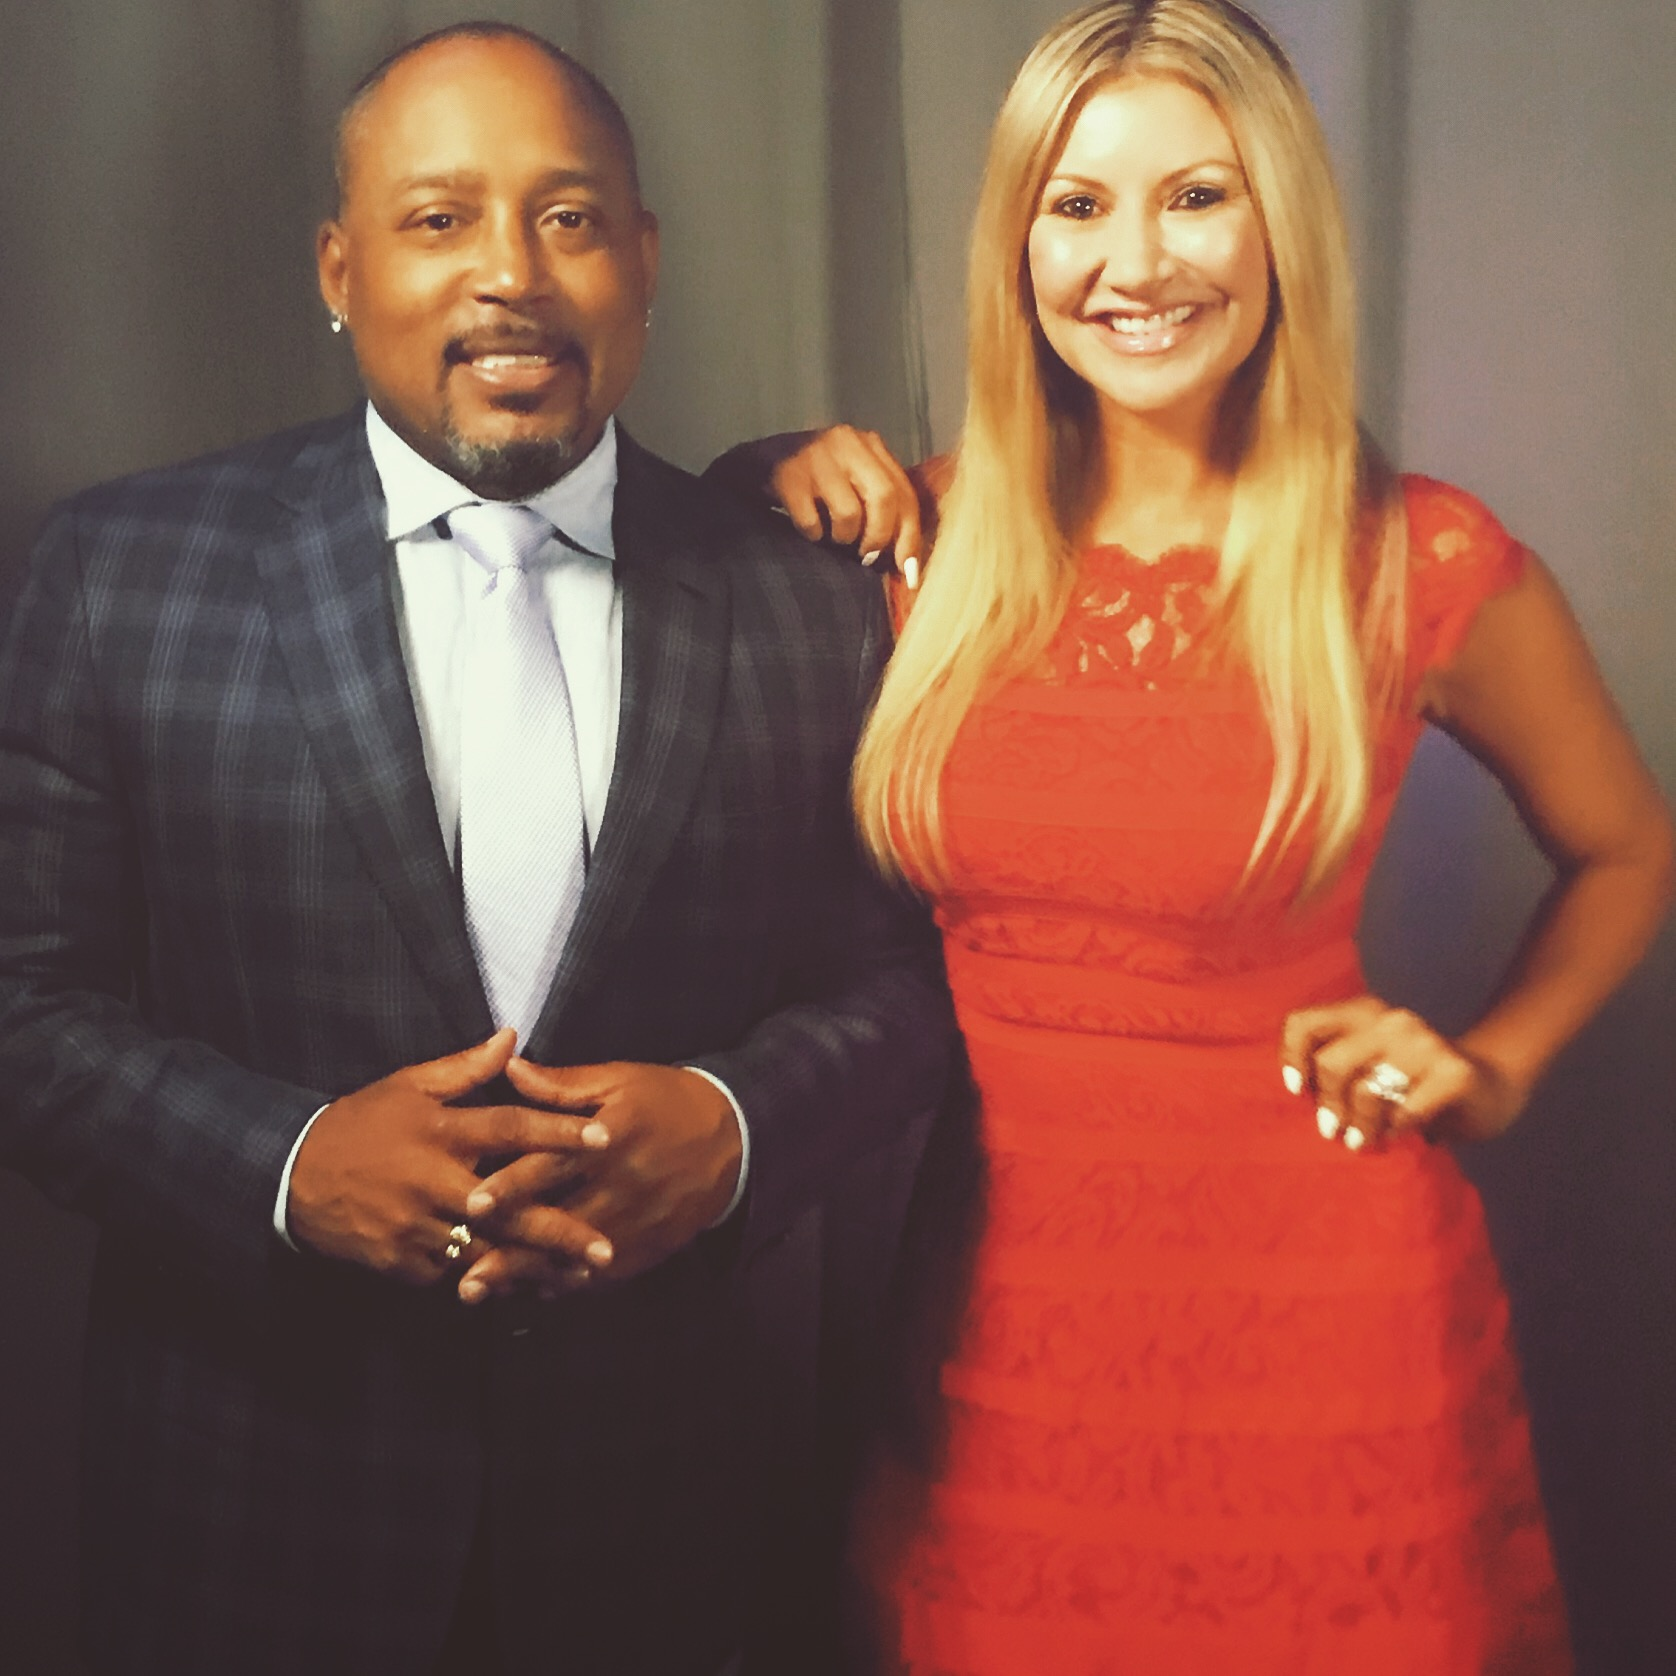 Carey Pena interviews Daymond John at the Chase For Business Conference